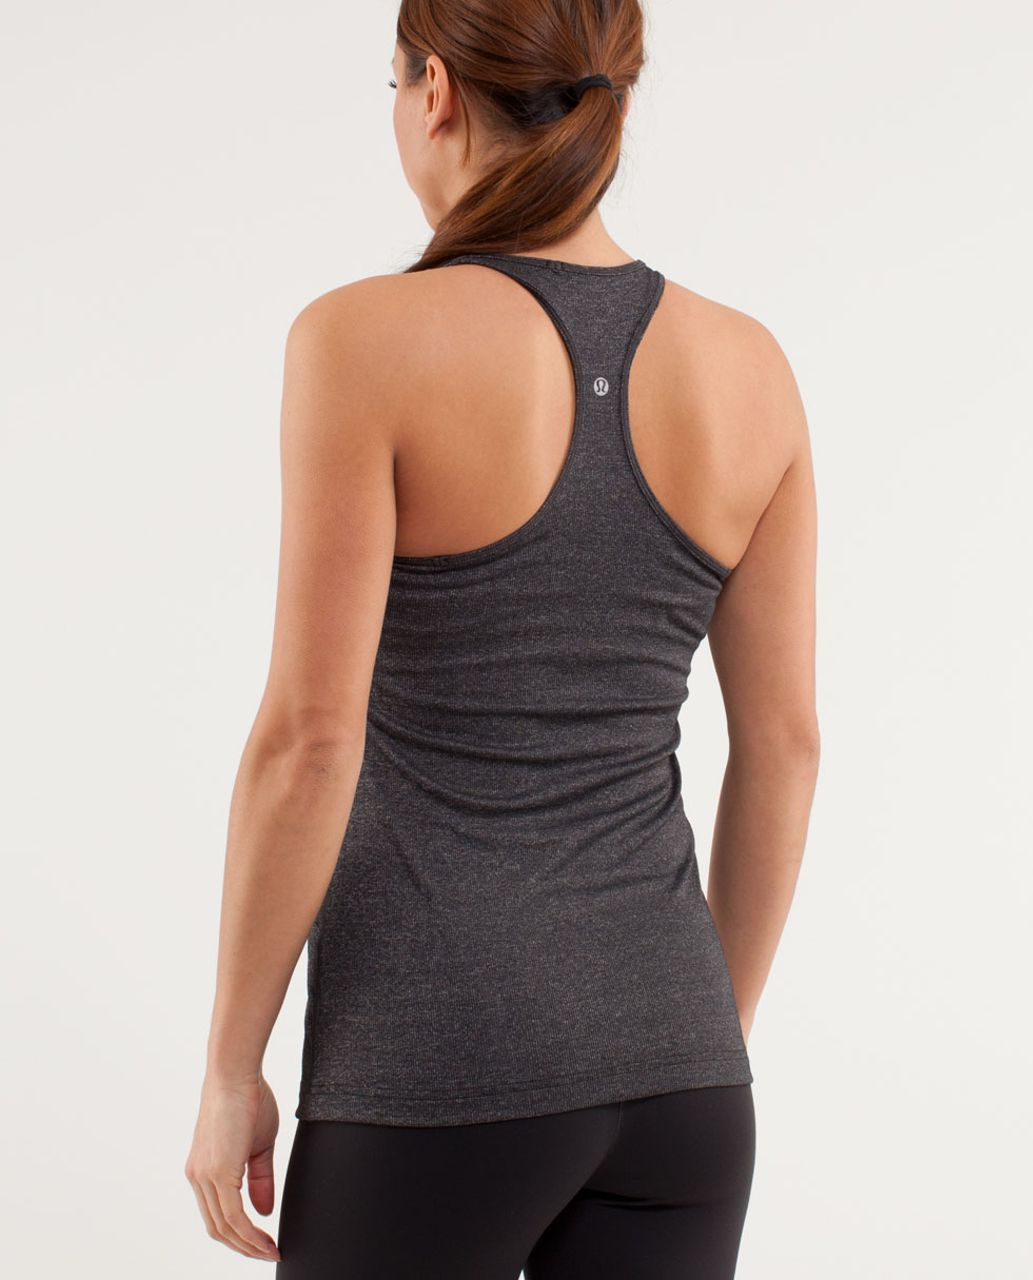 Lululemon Cool Racerback *Rib - Black